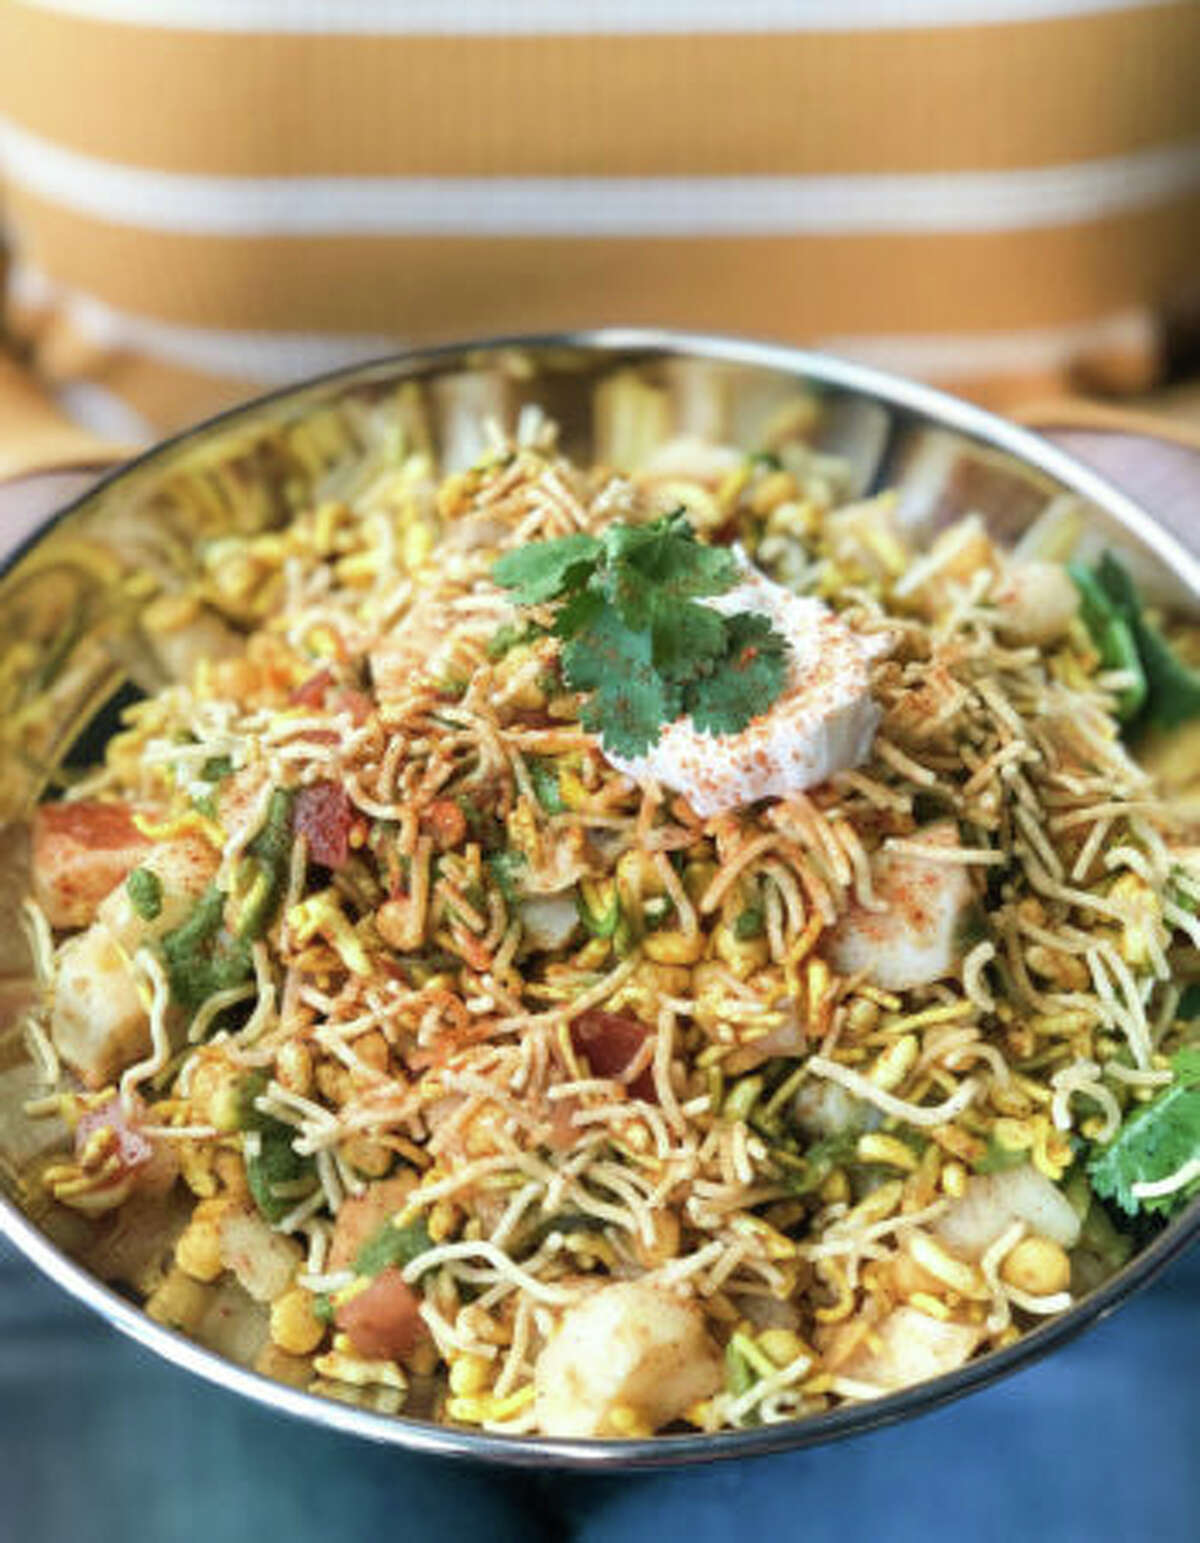 Lassi and Spice: An Indian-inspired cafe along South Lake Union, Lassi and Spice brew up tumeric lattes and a myriad of traditional lassis.